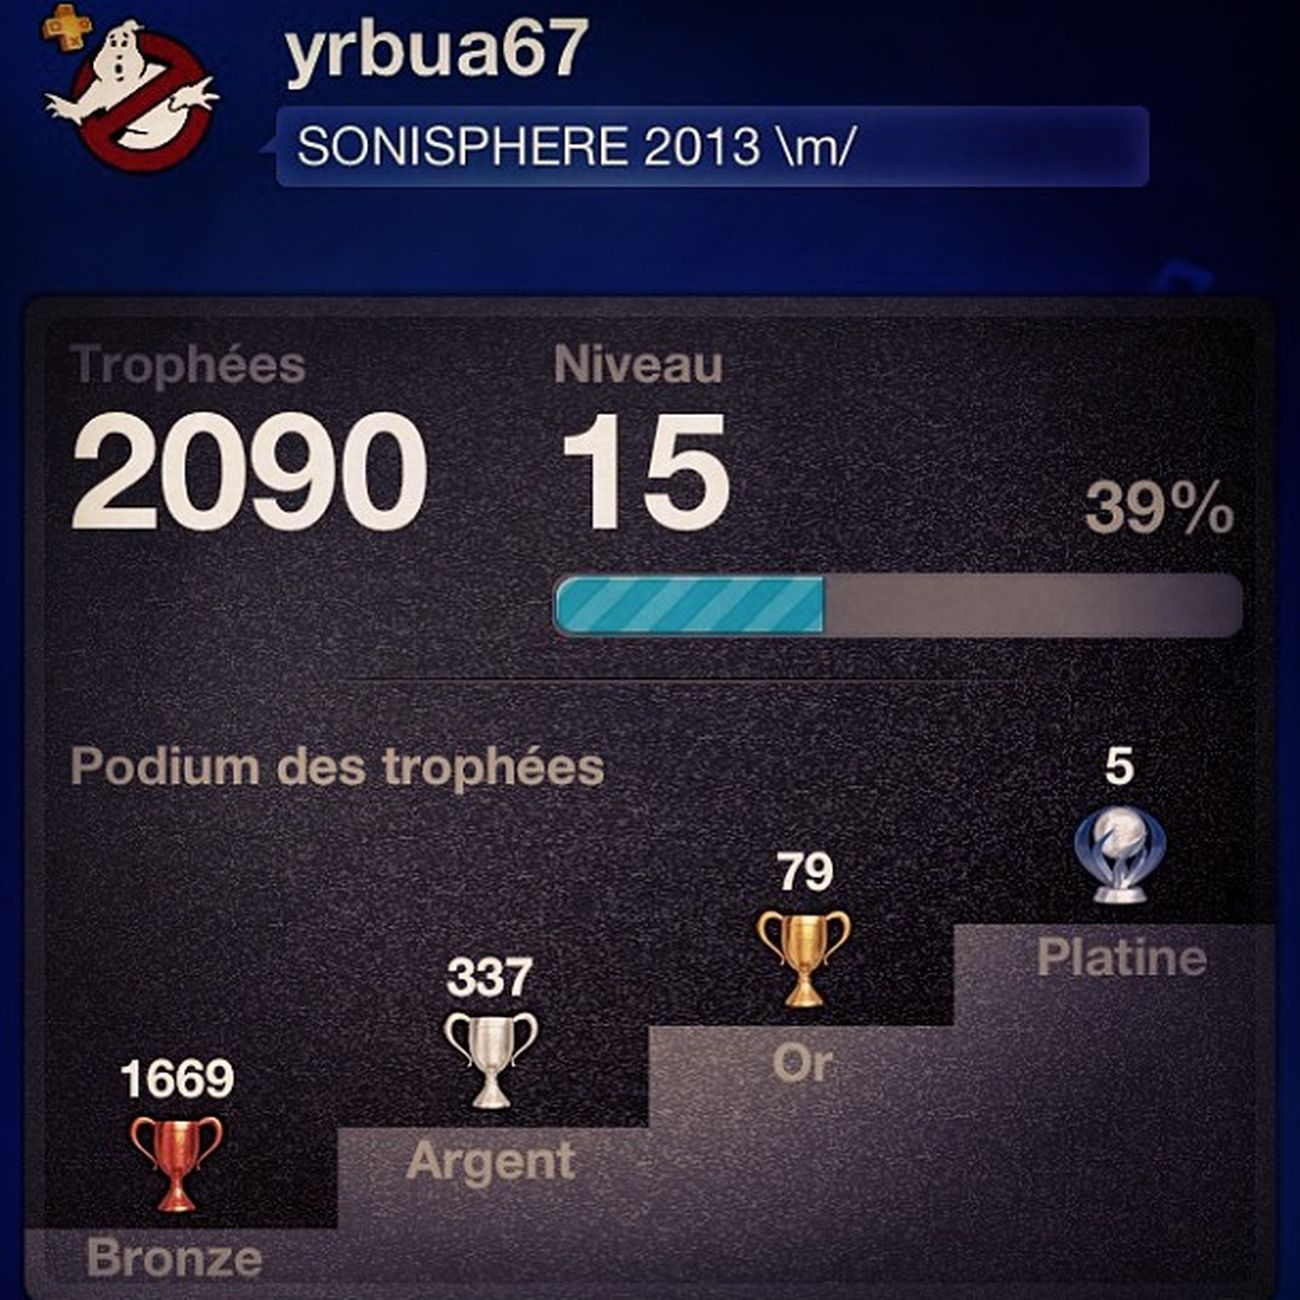 Psn Playstation2013 2090 Trophee trophy ps3 playstation3 sony instragram instragame instrcool platine